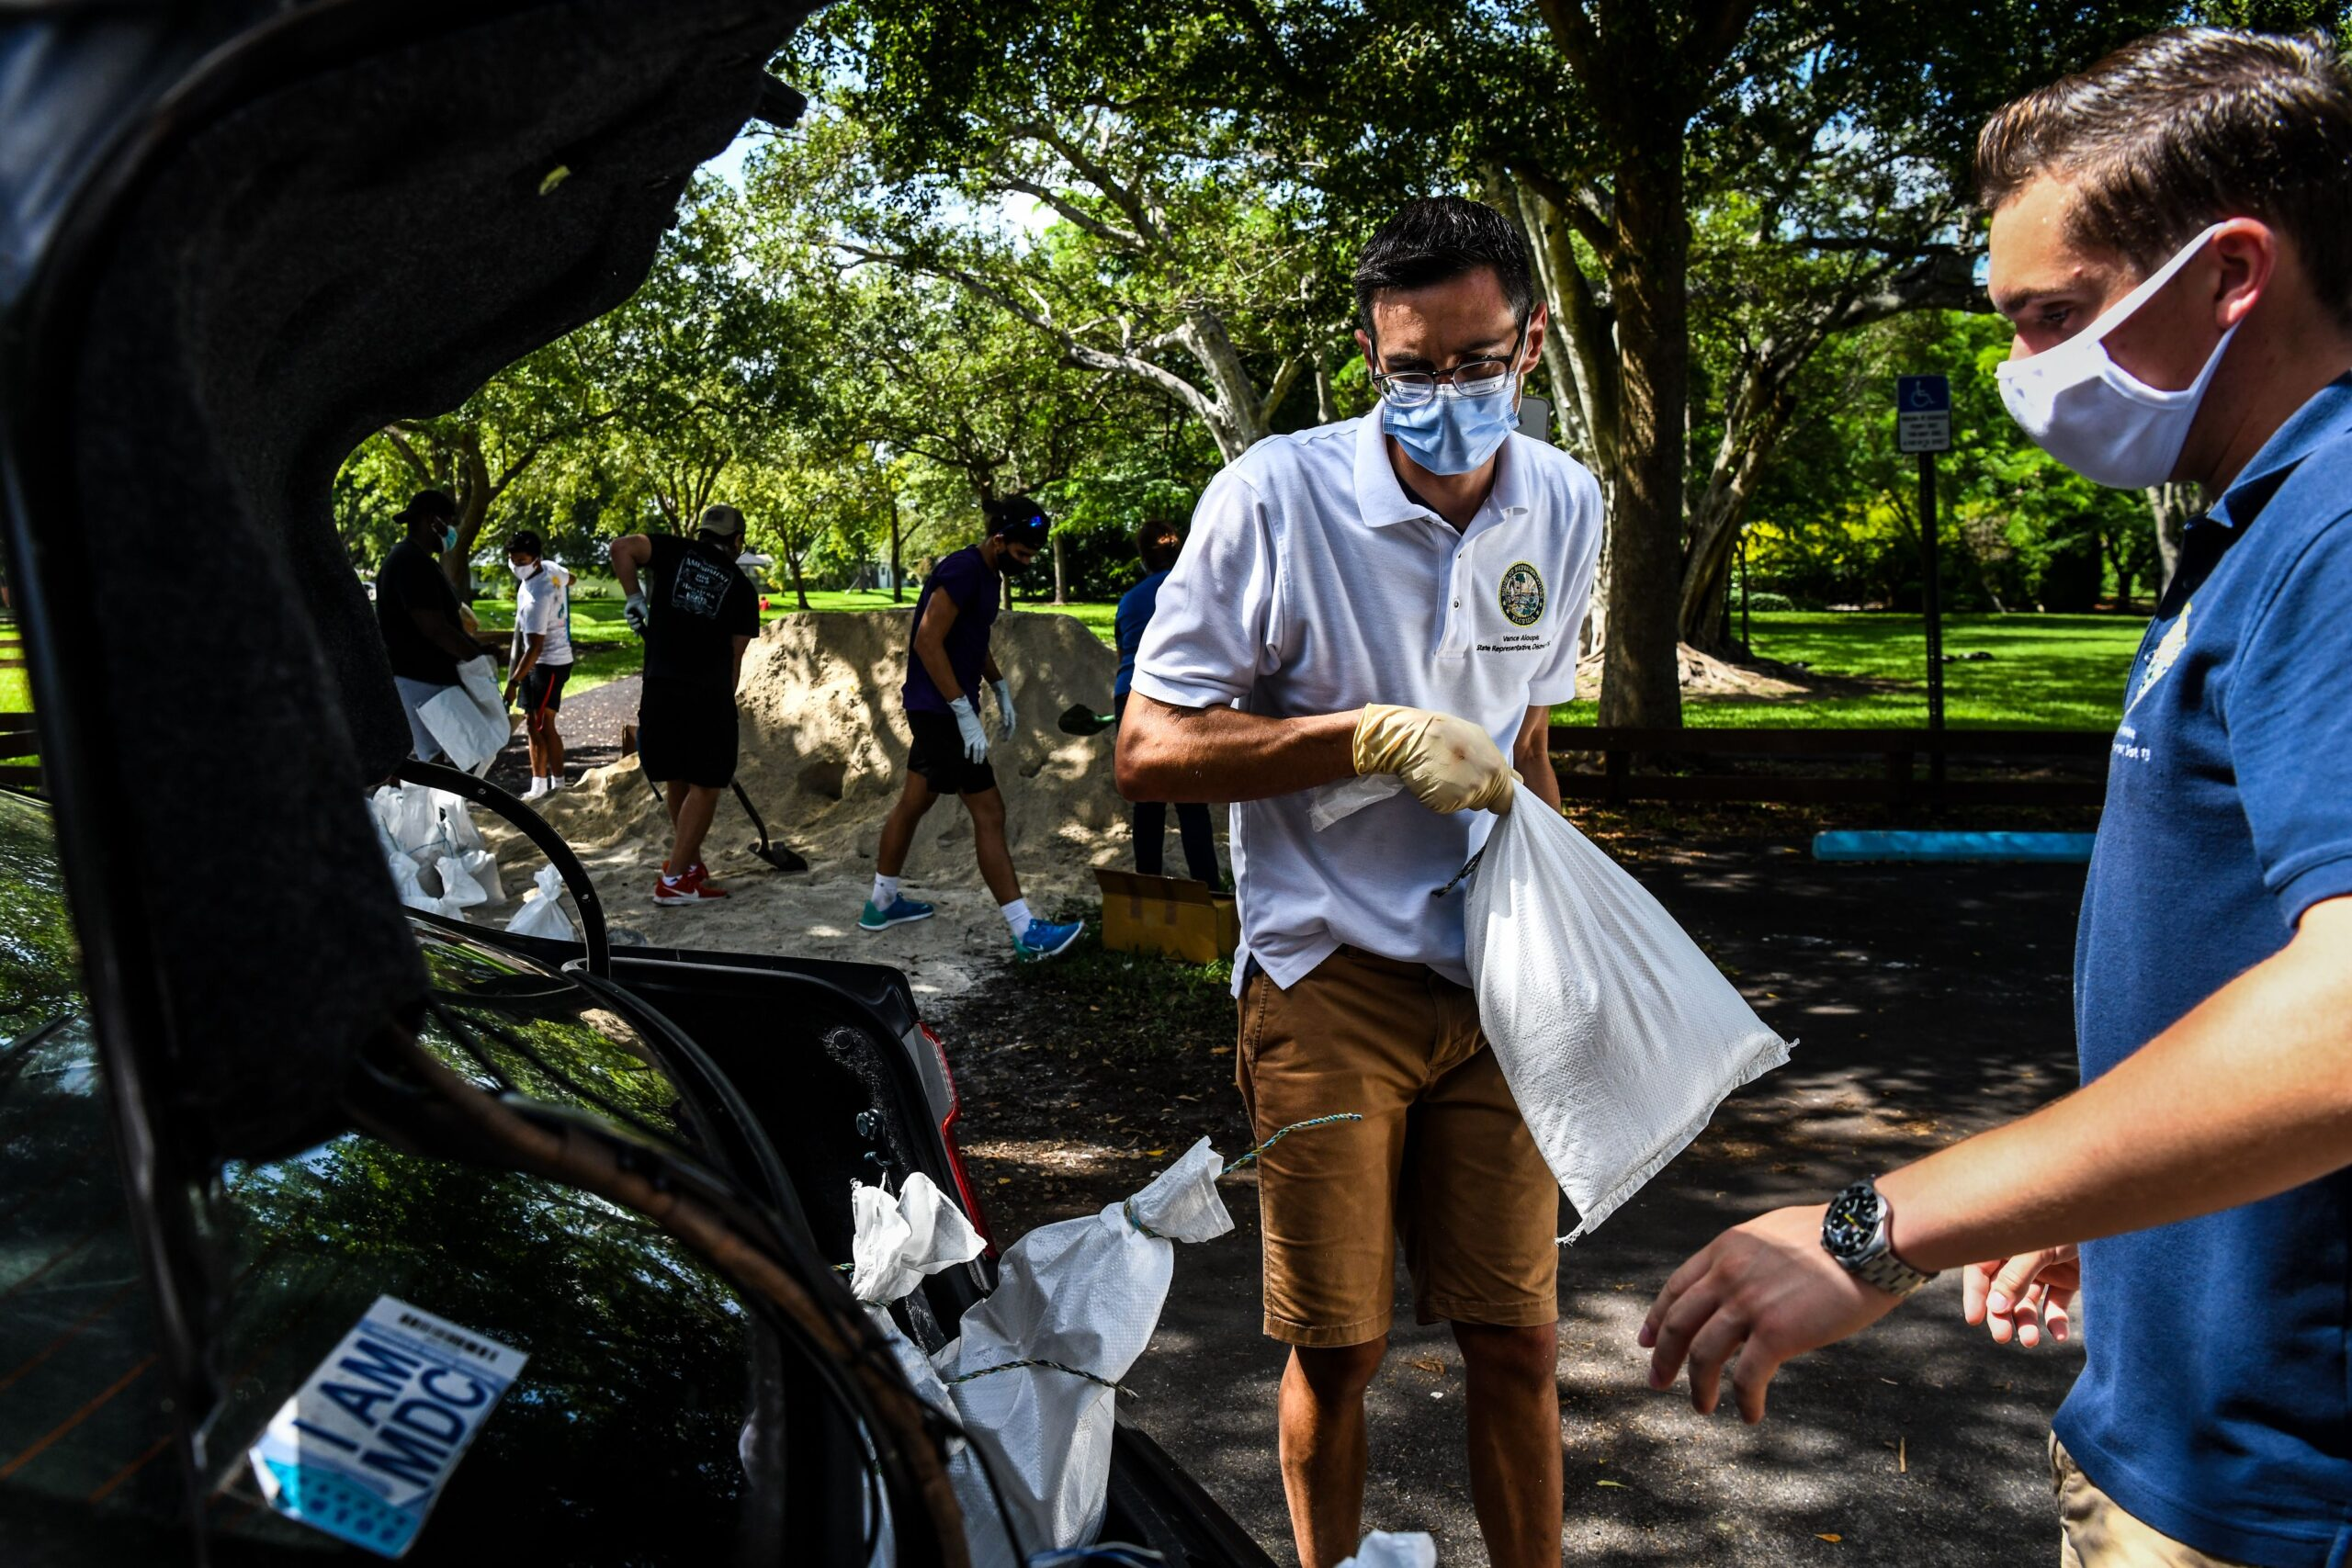 Member of Florida House of Representatives Vance Aloupis (C) puts sand bags in a resident's car trunk in Palmetto Bay near Miami, on July 31, 2020 as Floridians prepare for Hurricane Isaias while a State of Emergency has been declared for 19 Counties. - Hurricane Isaias lashed the Bahamas July 31 as it churned toward Florida, bringing new dangers to a US state suffering record deaths from an unrelenting coronavirus outbreak. The category one storm, packing winds of 75 miles (120 kilometers) an hour, gained strength Thursday night after sweeping over the Dominican Republic. (Photo by CHANDAN KHANNA / AFP) (Photo by CHANDAN KHANNA/AFP via Getty Images)